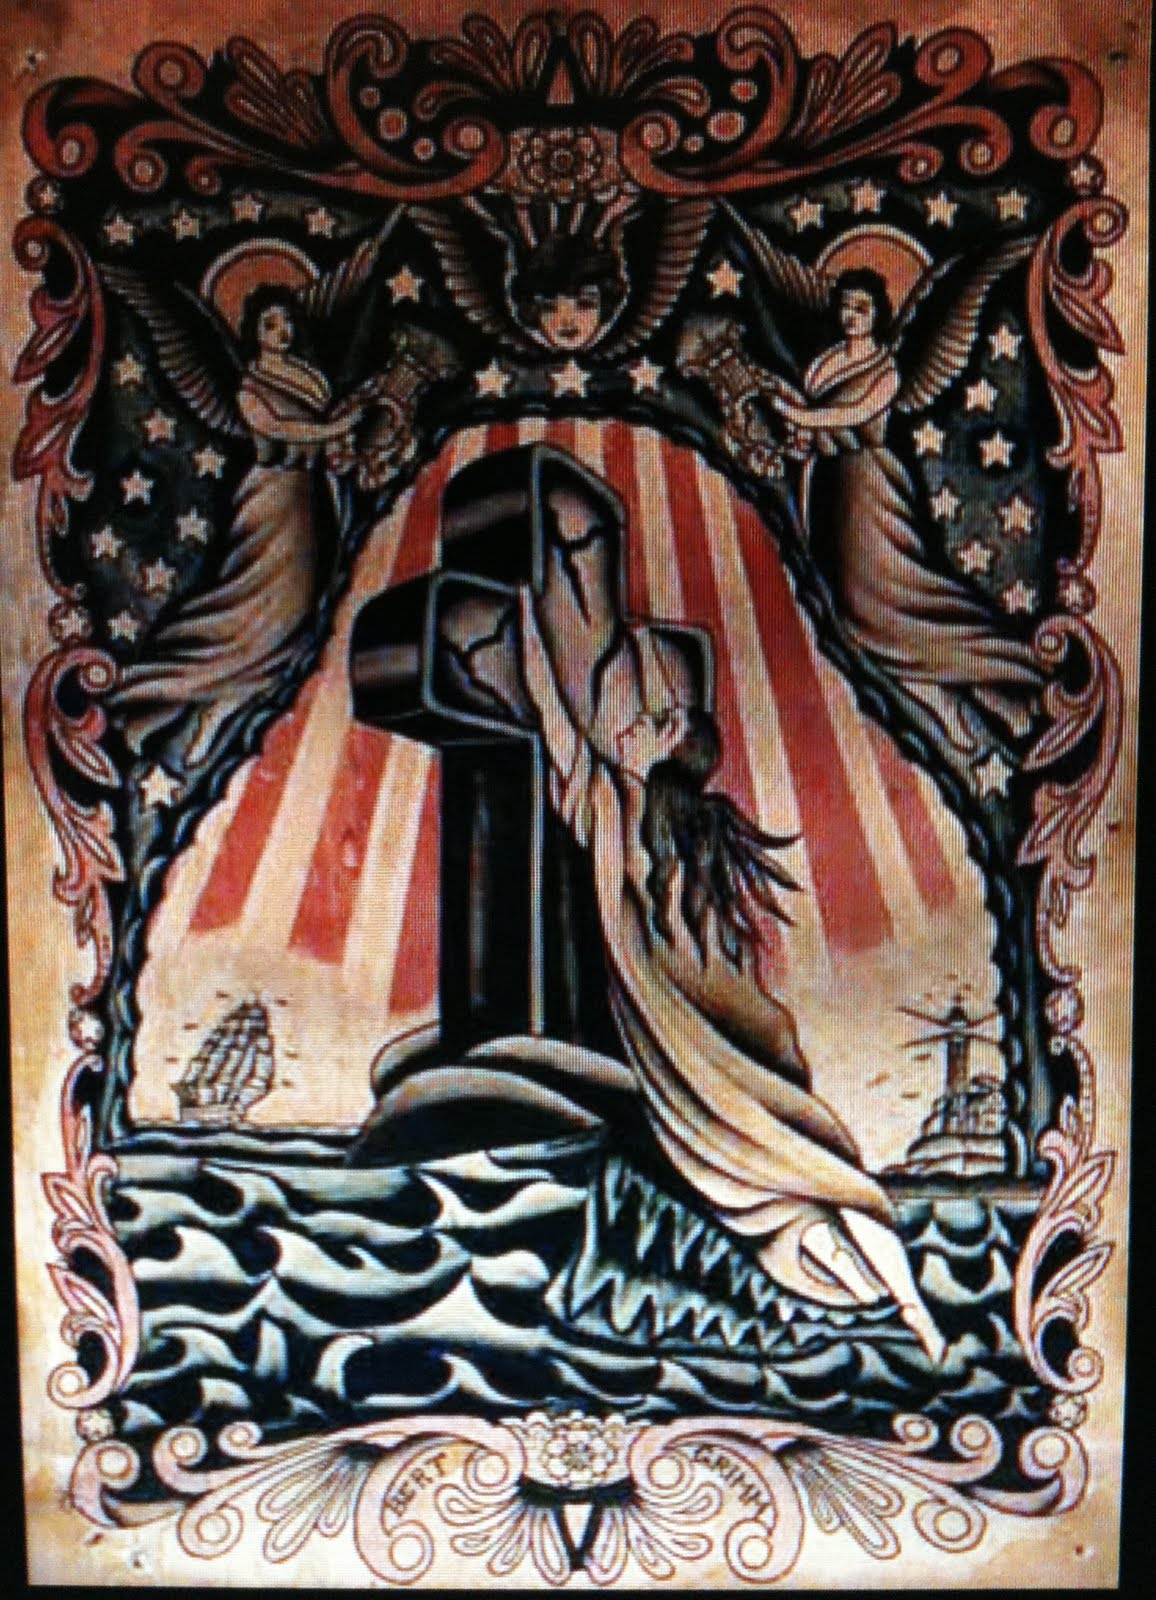 Xtimemachinex a few vintage 1910 1940 american tattoo for Classic american images